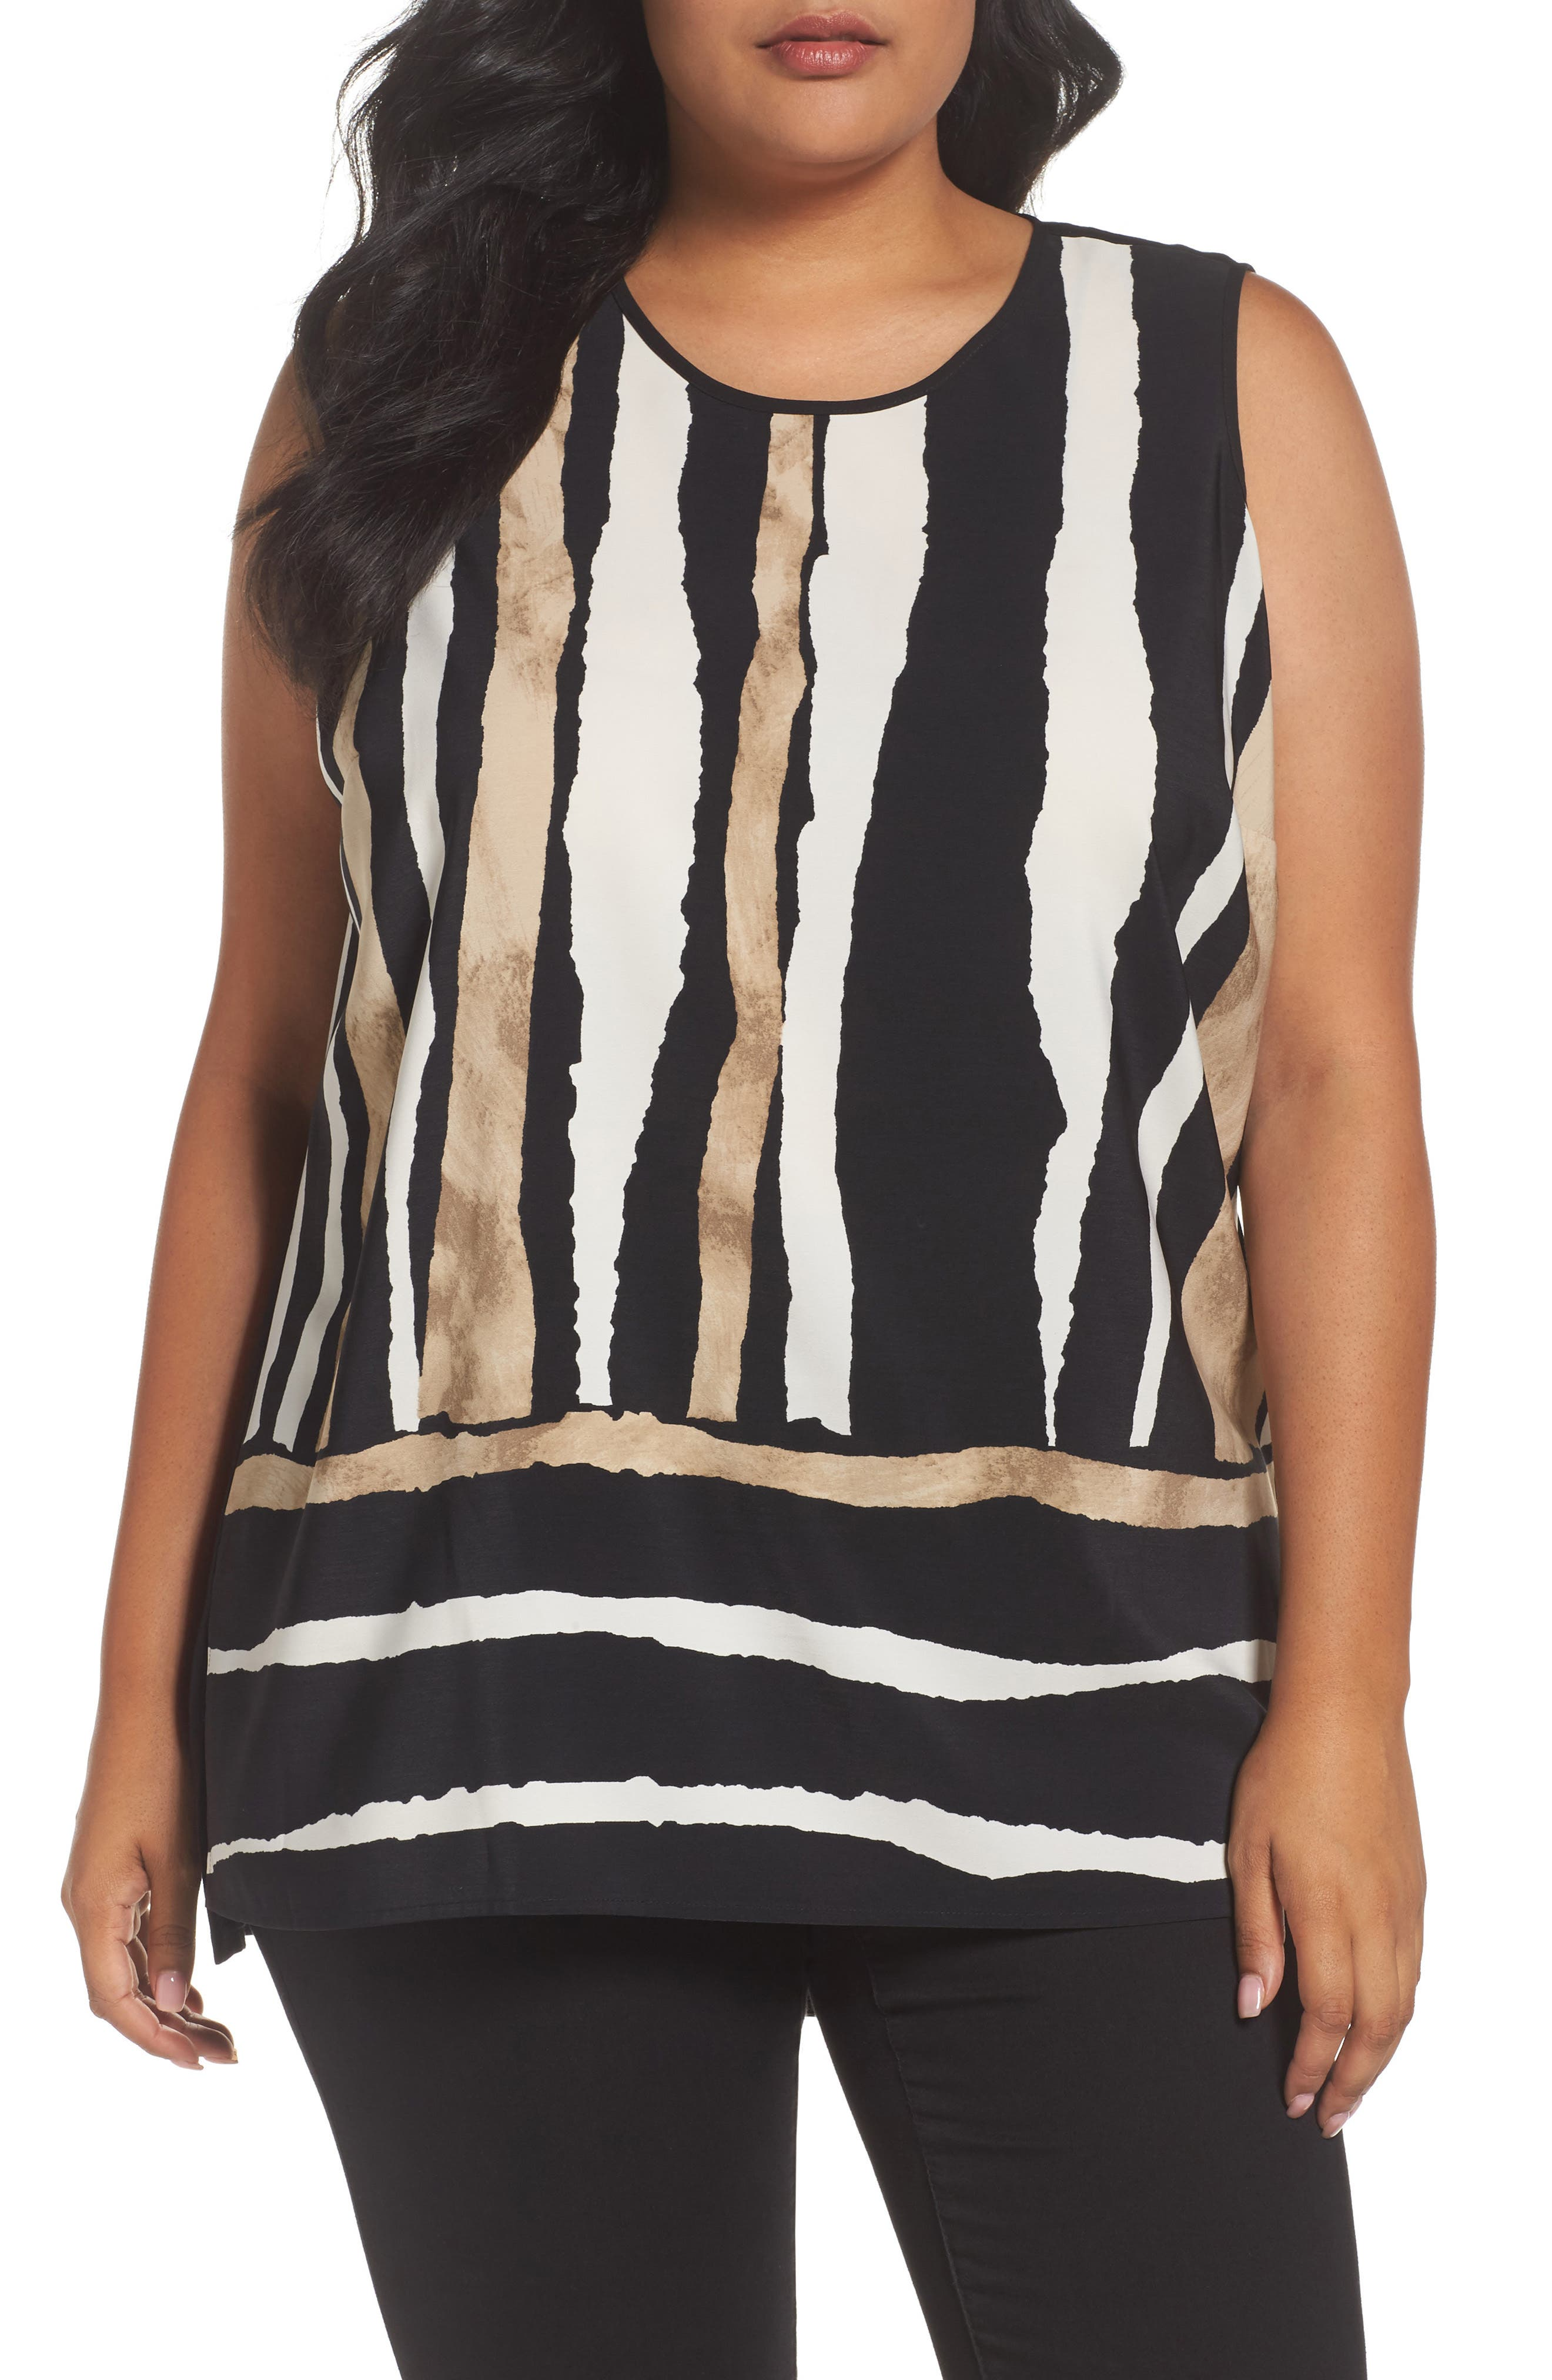 Main Image - Vince Camuto Linear Terrain Mixed Media Top (Plus Size)